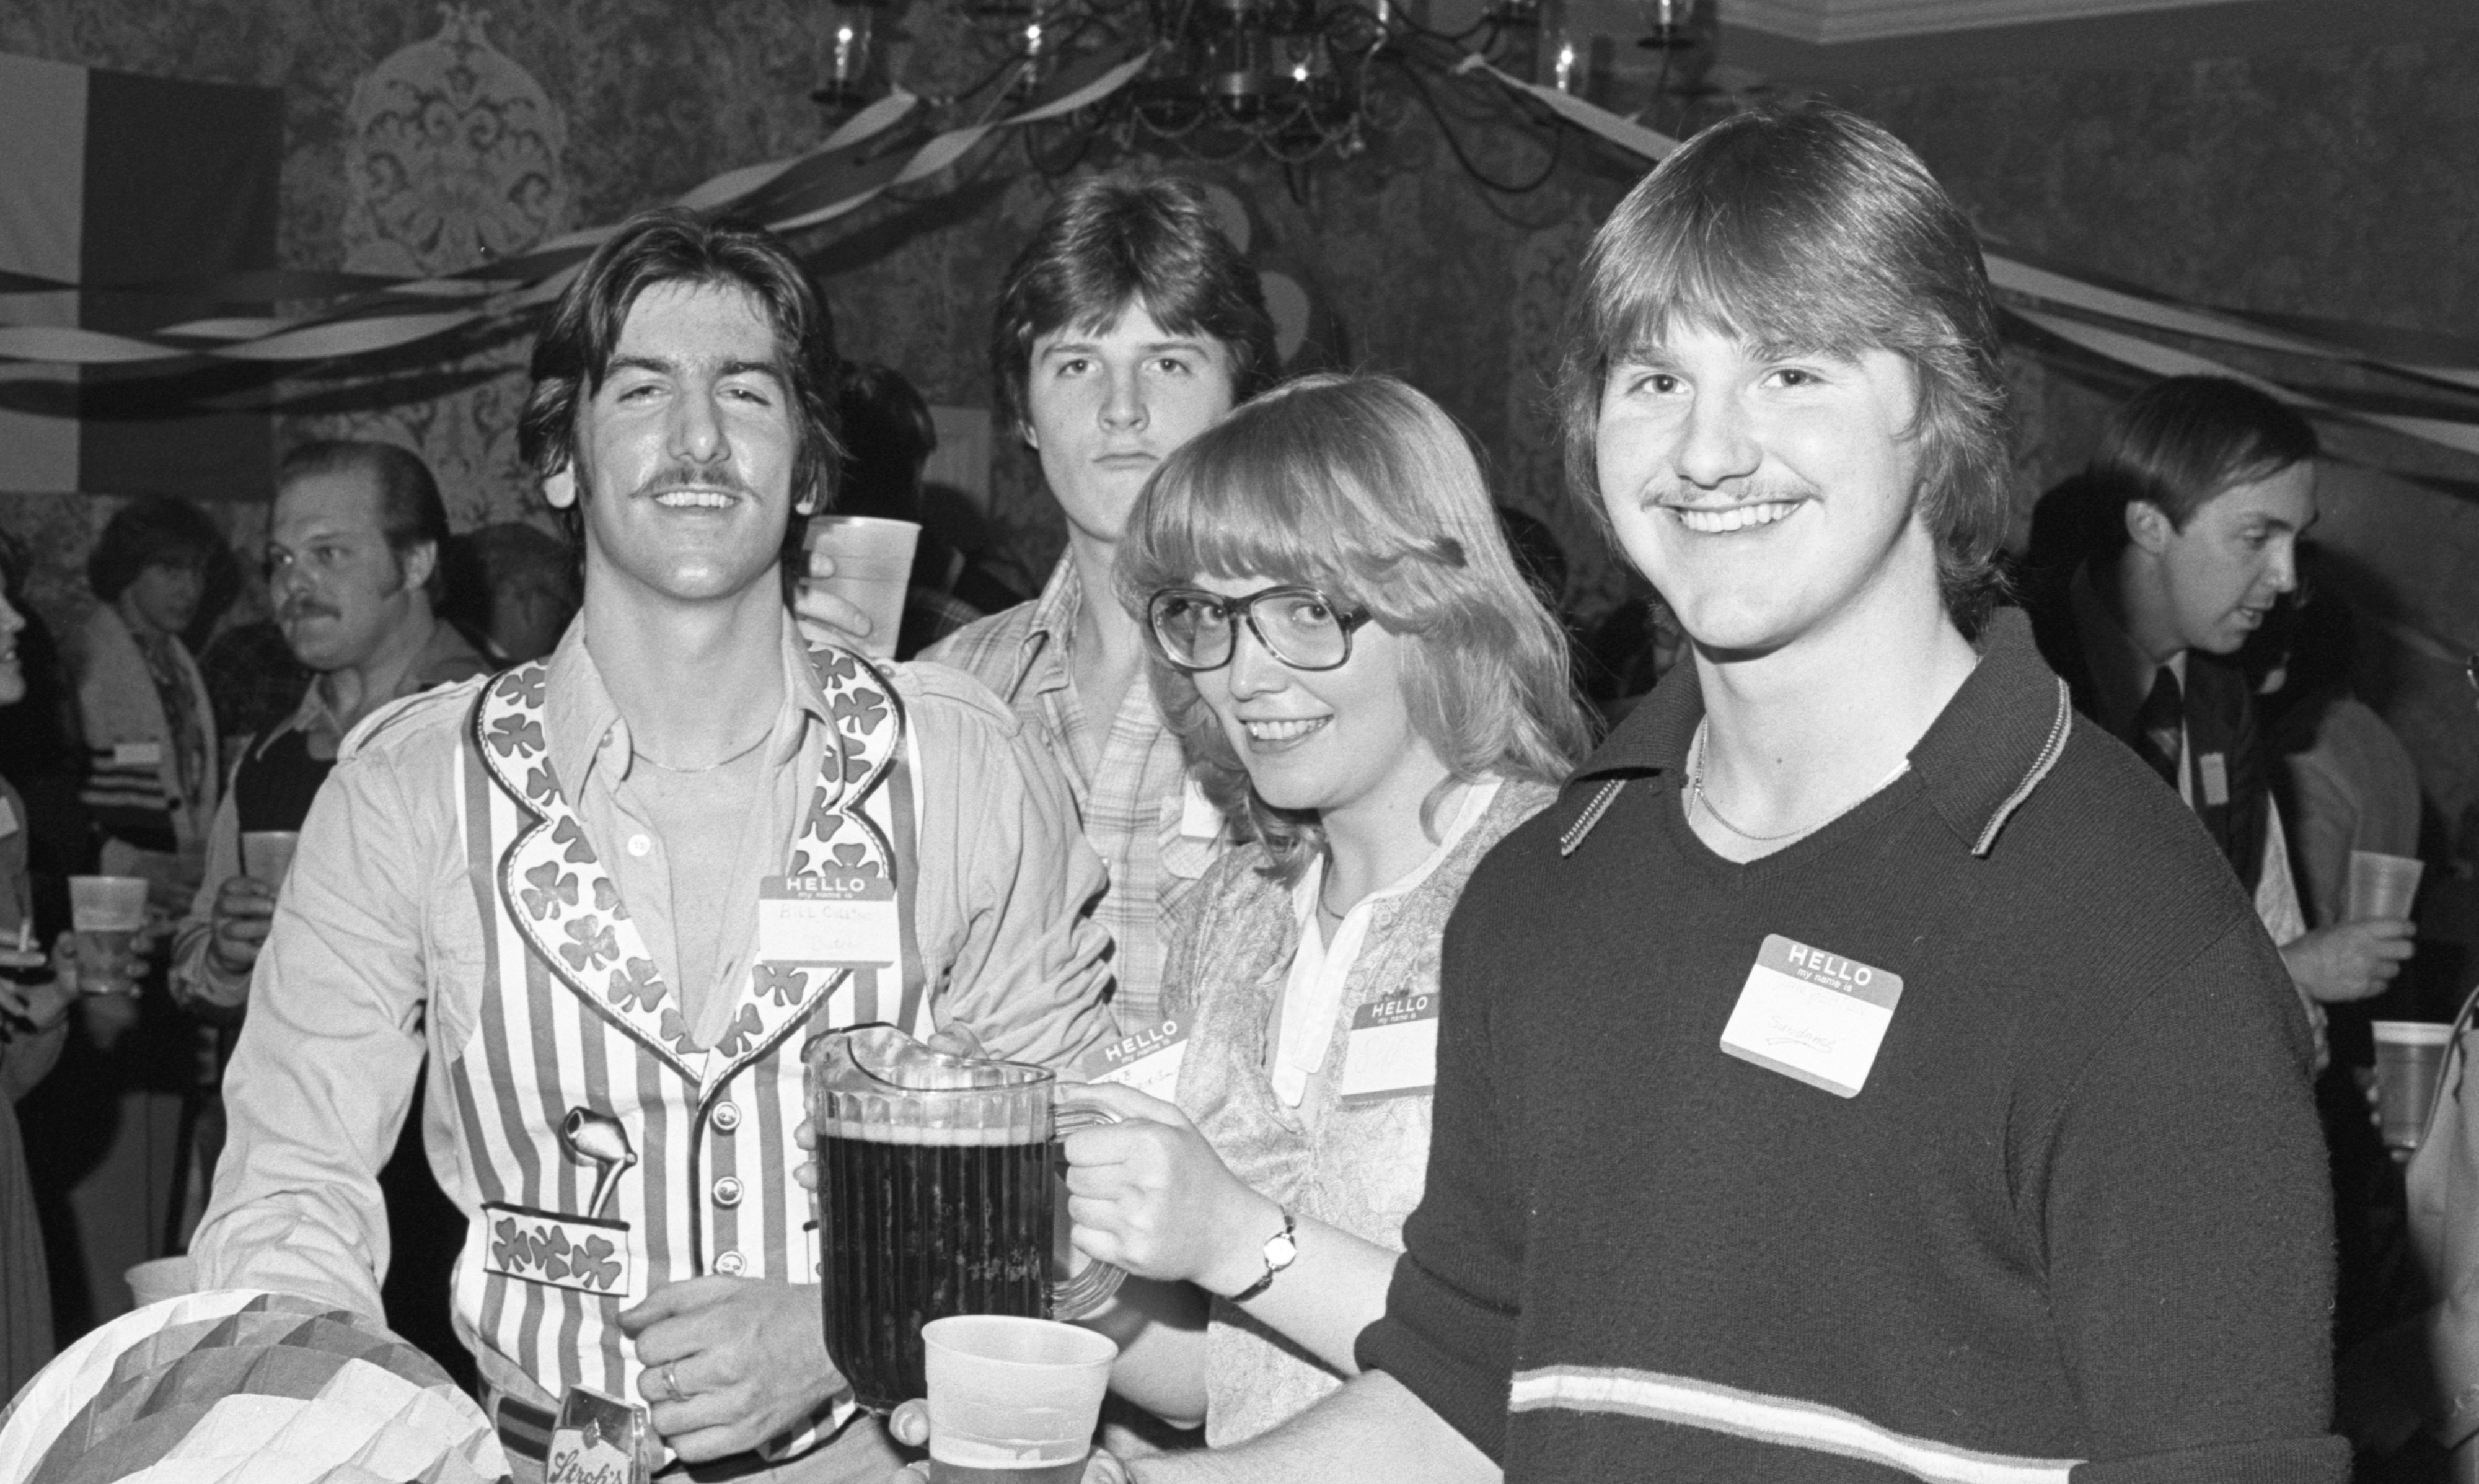 St. Patrick's Day Party At The Ann Arbor Inn, March 1979 image